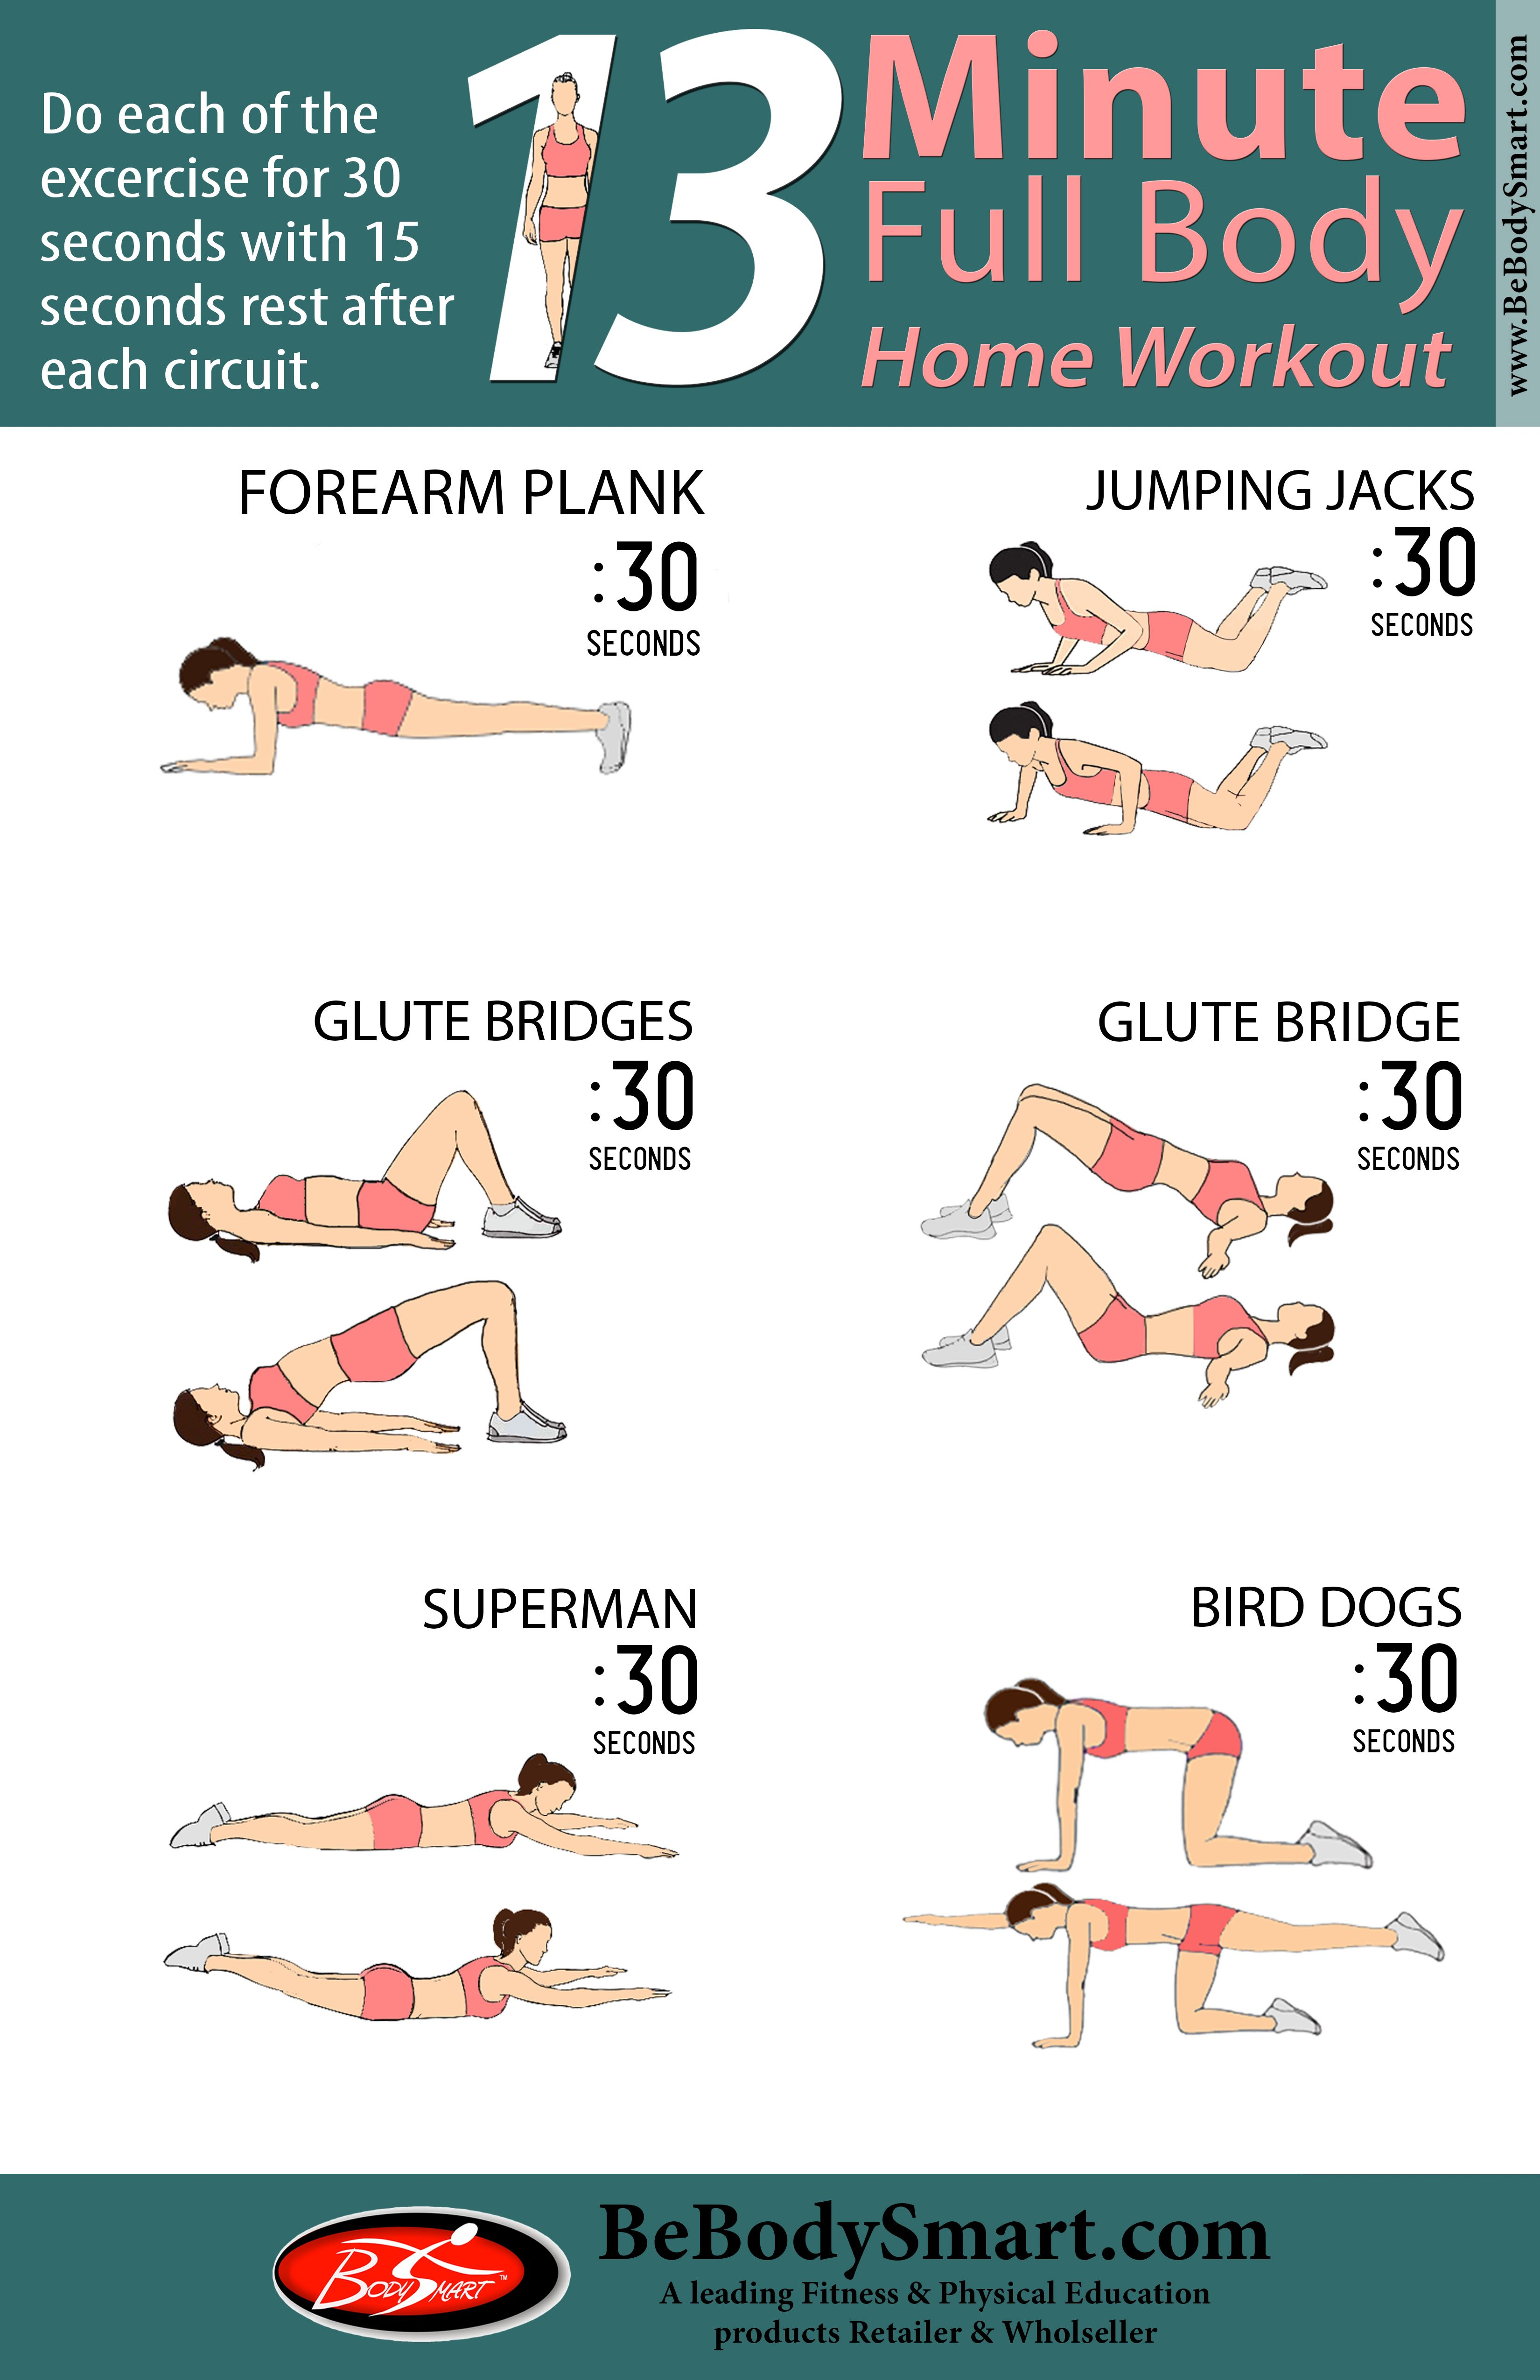 13 Minute Full Body Home Workout